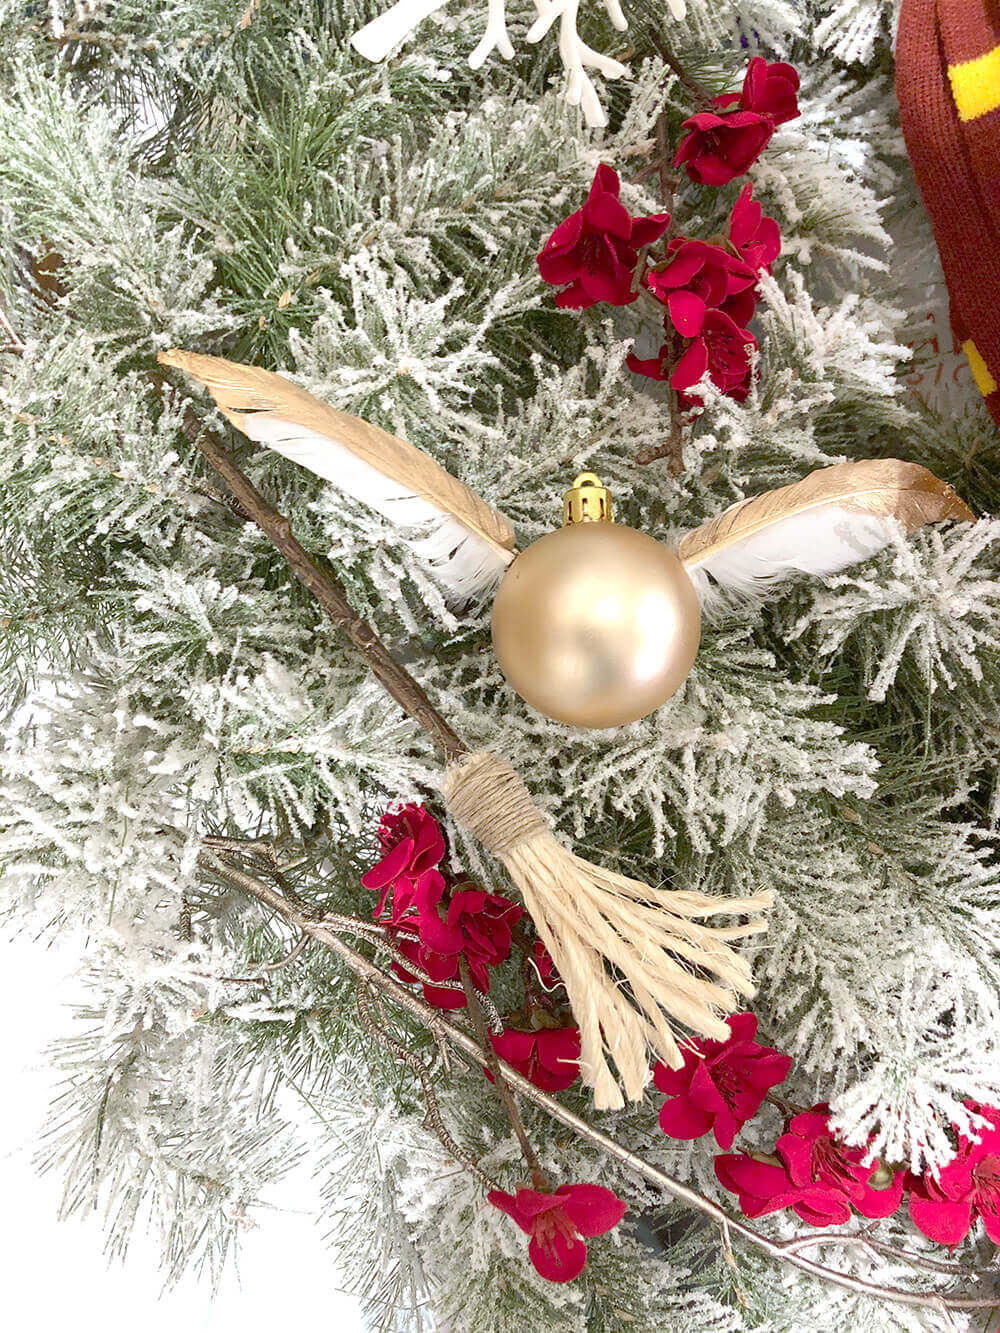 Golden snitch ornament on Christmas wreath